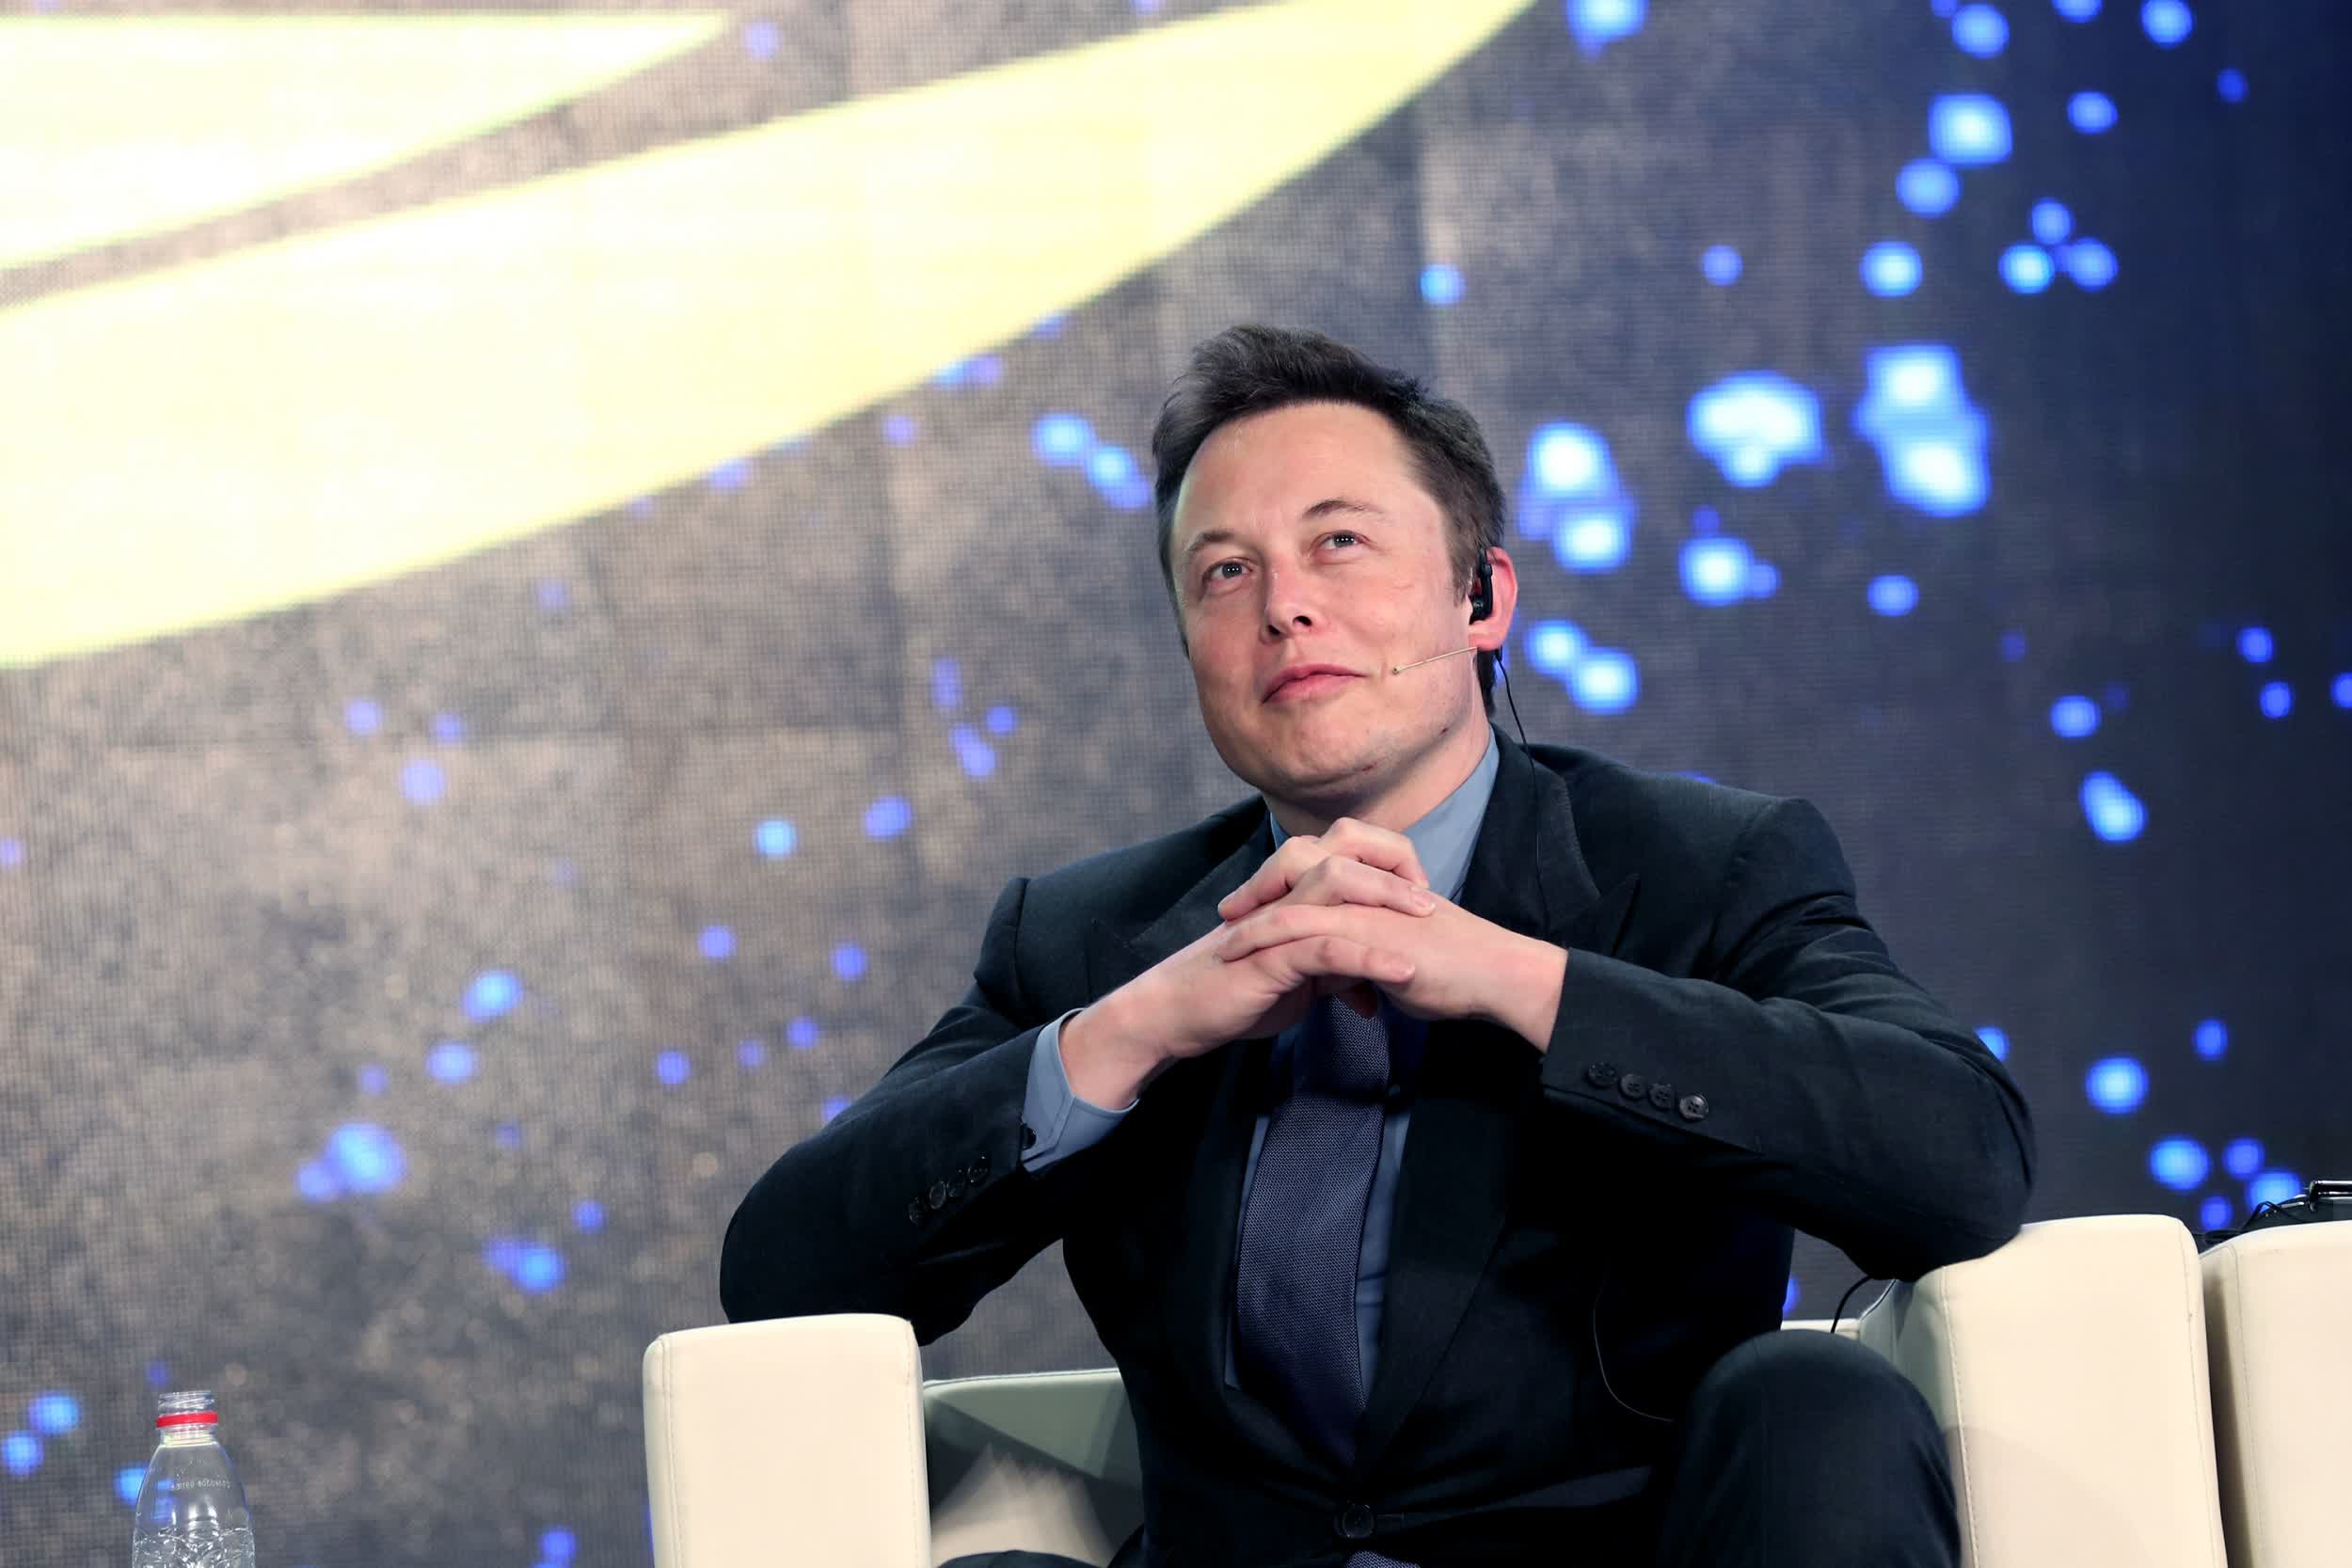 Saturday Night Live's choice of Elon Musk as host proves controversial